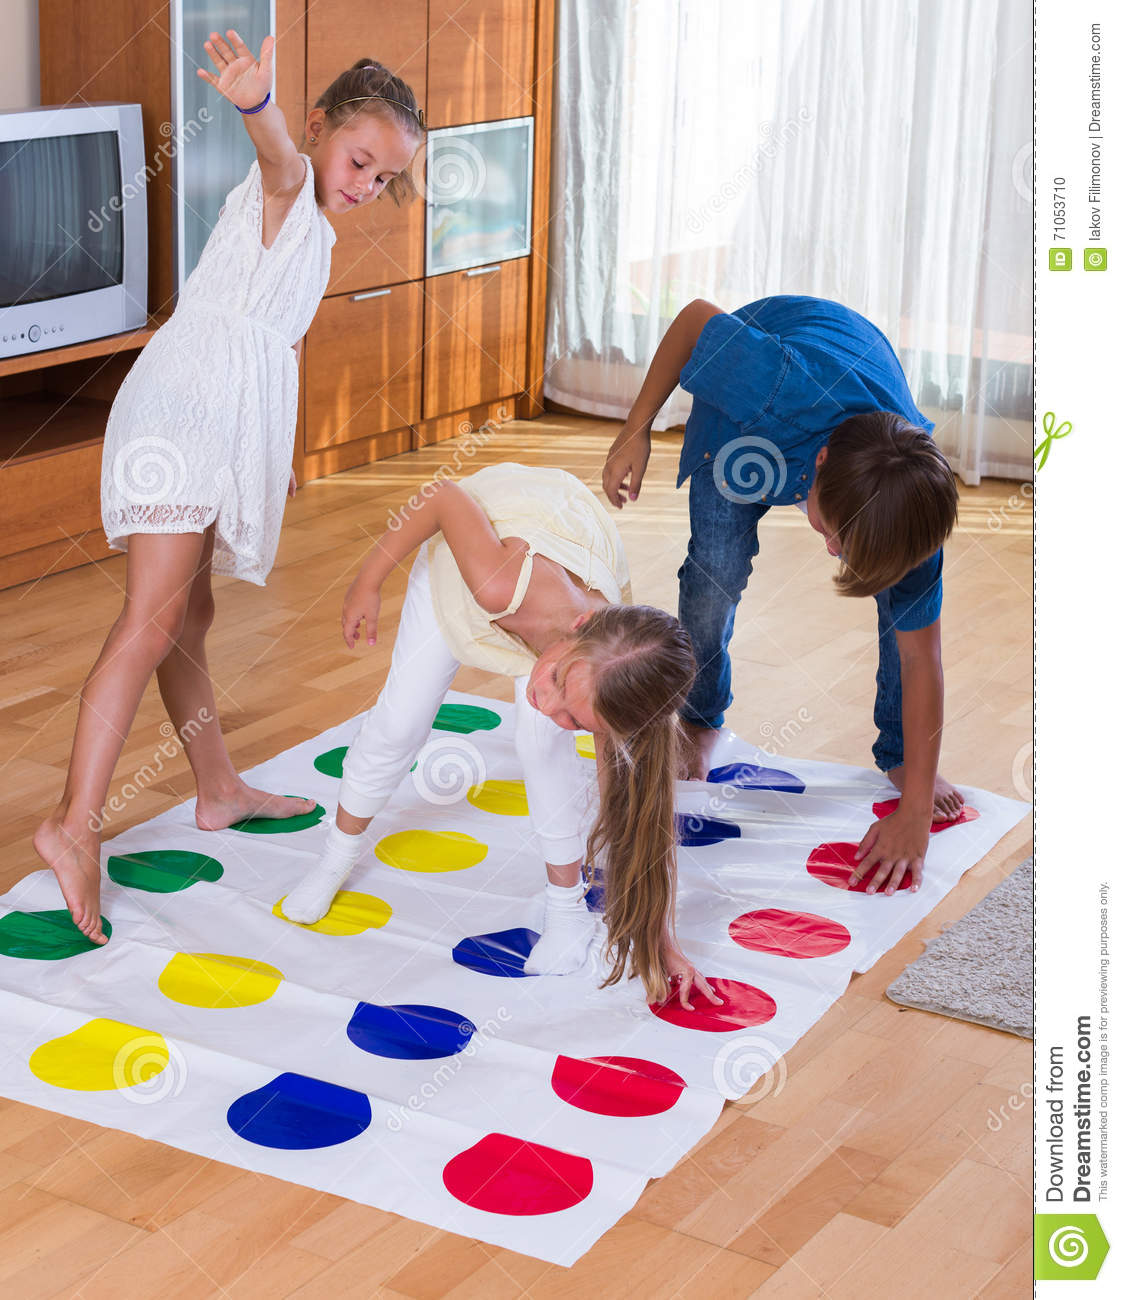 from Luka little girls playing twister